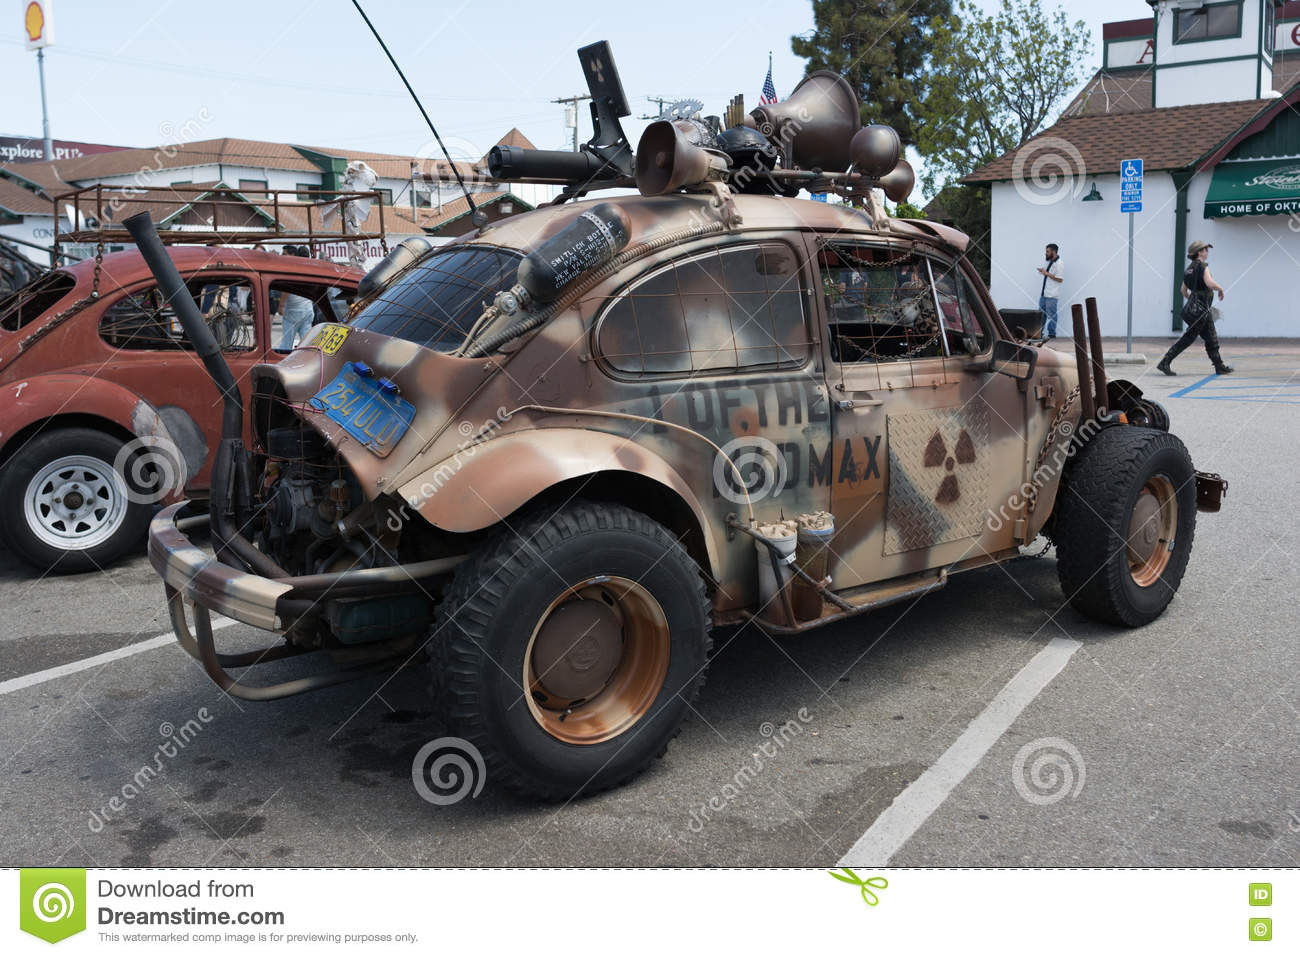 Volkswagen Beetle Post Apocalyptic Survival Vehicle